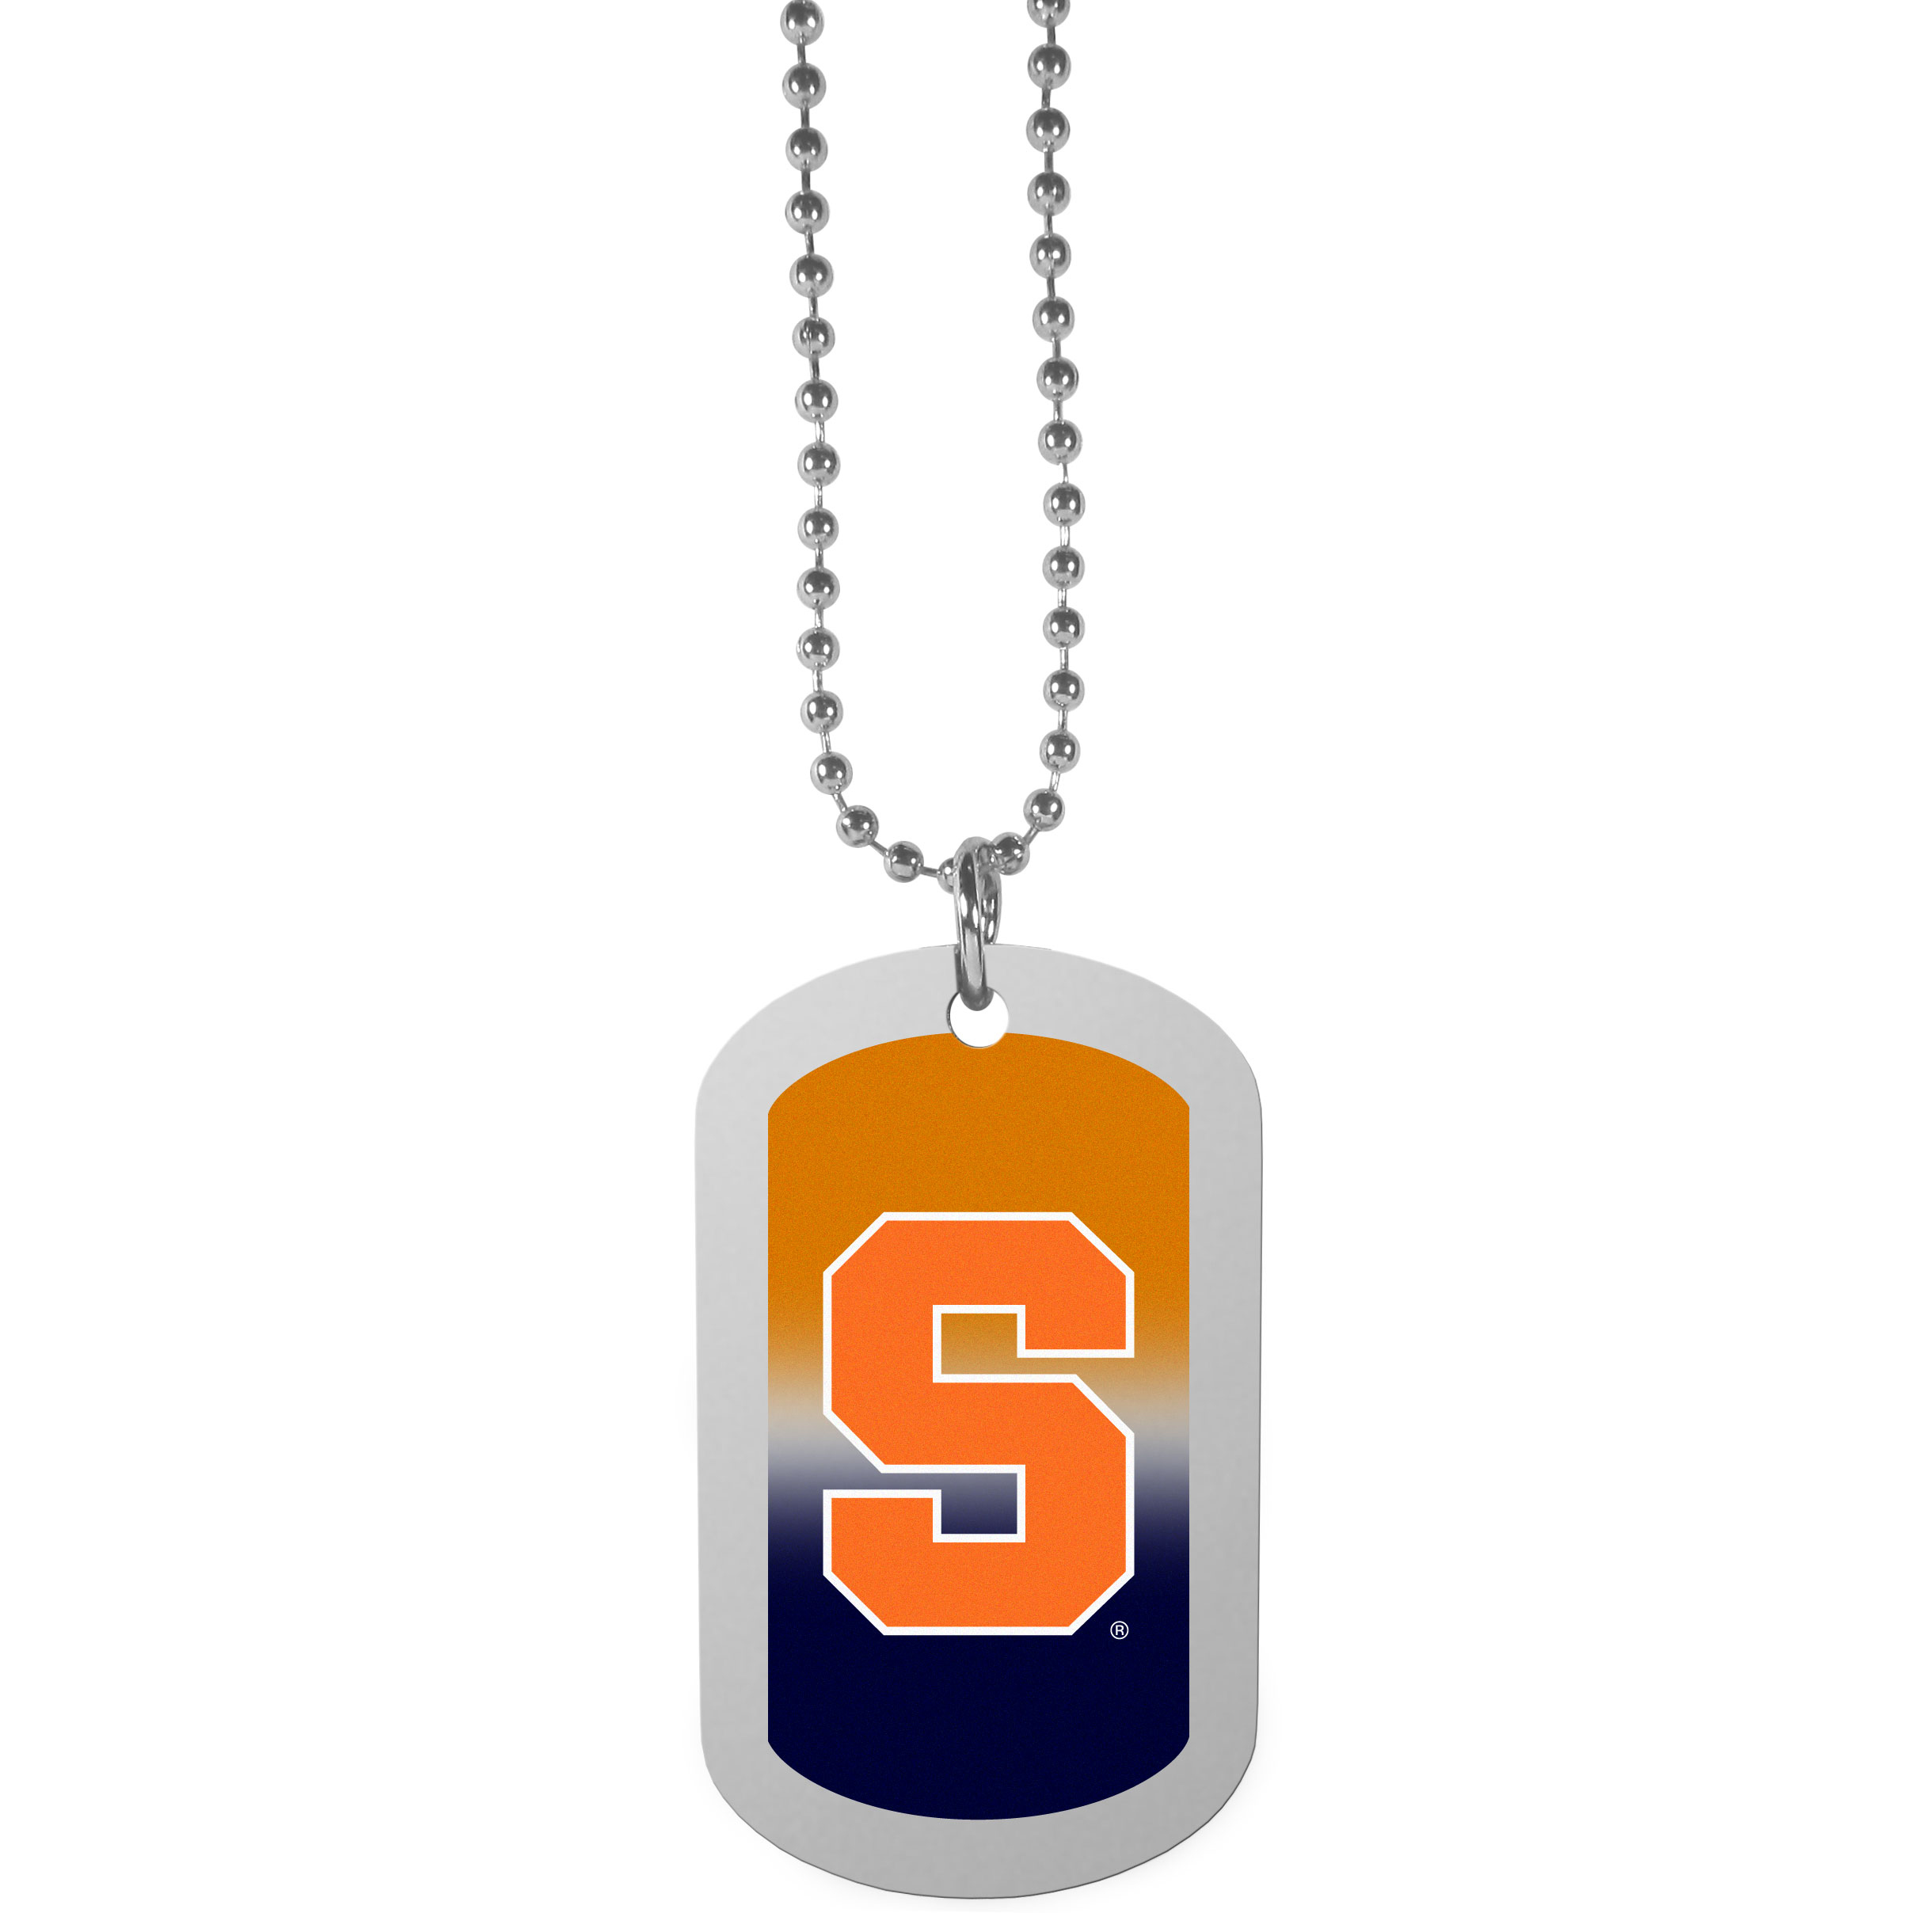 Syracuse Orange Team Tag Necklace - Dog tag necklaces are a fashion statement that is here to stay. The sporty version of the classic tag features a gradient print in team colors featuring a full color team logo over a high polish tag to create a bold and sporty look. The tag comes on a 26 inch ball chain with a ball and joint clasp. Any Syracuse Orange would be proud to wear this attractive fashion accessory.